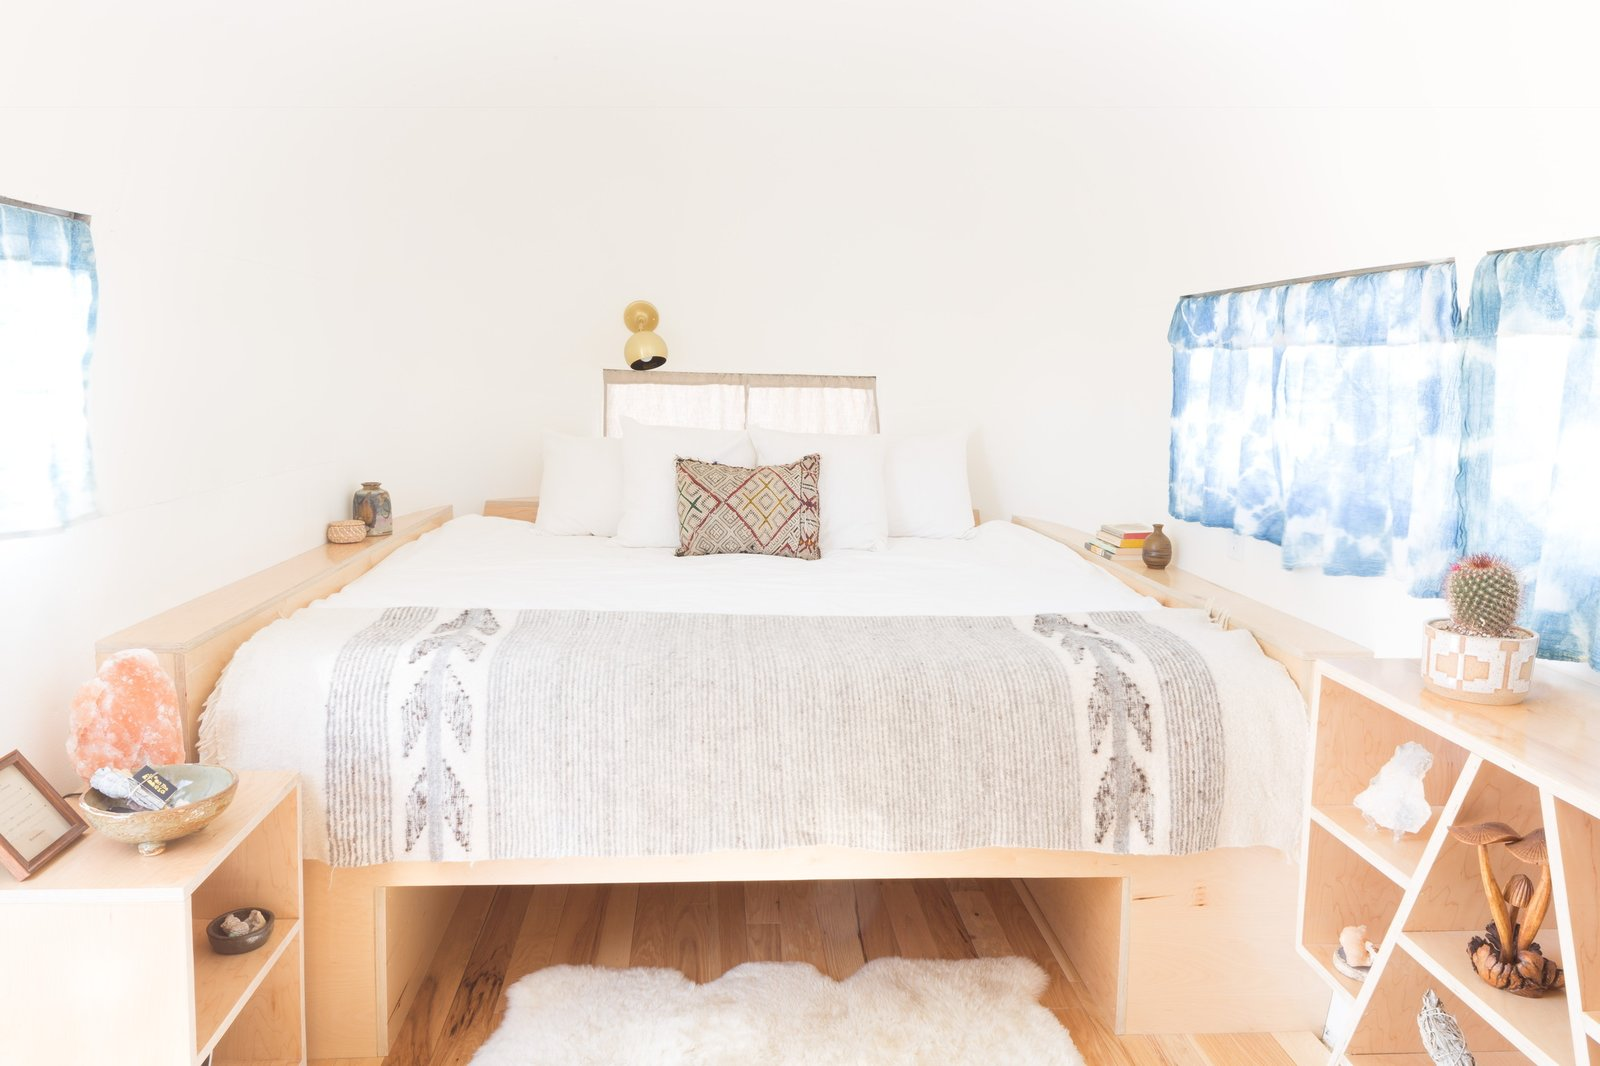 Bedroom, Wall, Night Stands, Bed, Rug, and Light Hardwood Plush Casper Beds, white linens, and cozy touches can be found in all the Airstreams.  Best Bedroom Wall Rug Light Hardwood Bed Photos from Joshua Tree Is Now Home to a Chic Airstream Oasis—Featuring 4 Trailers Available to Rent